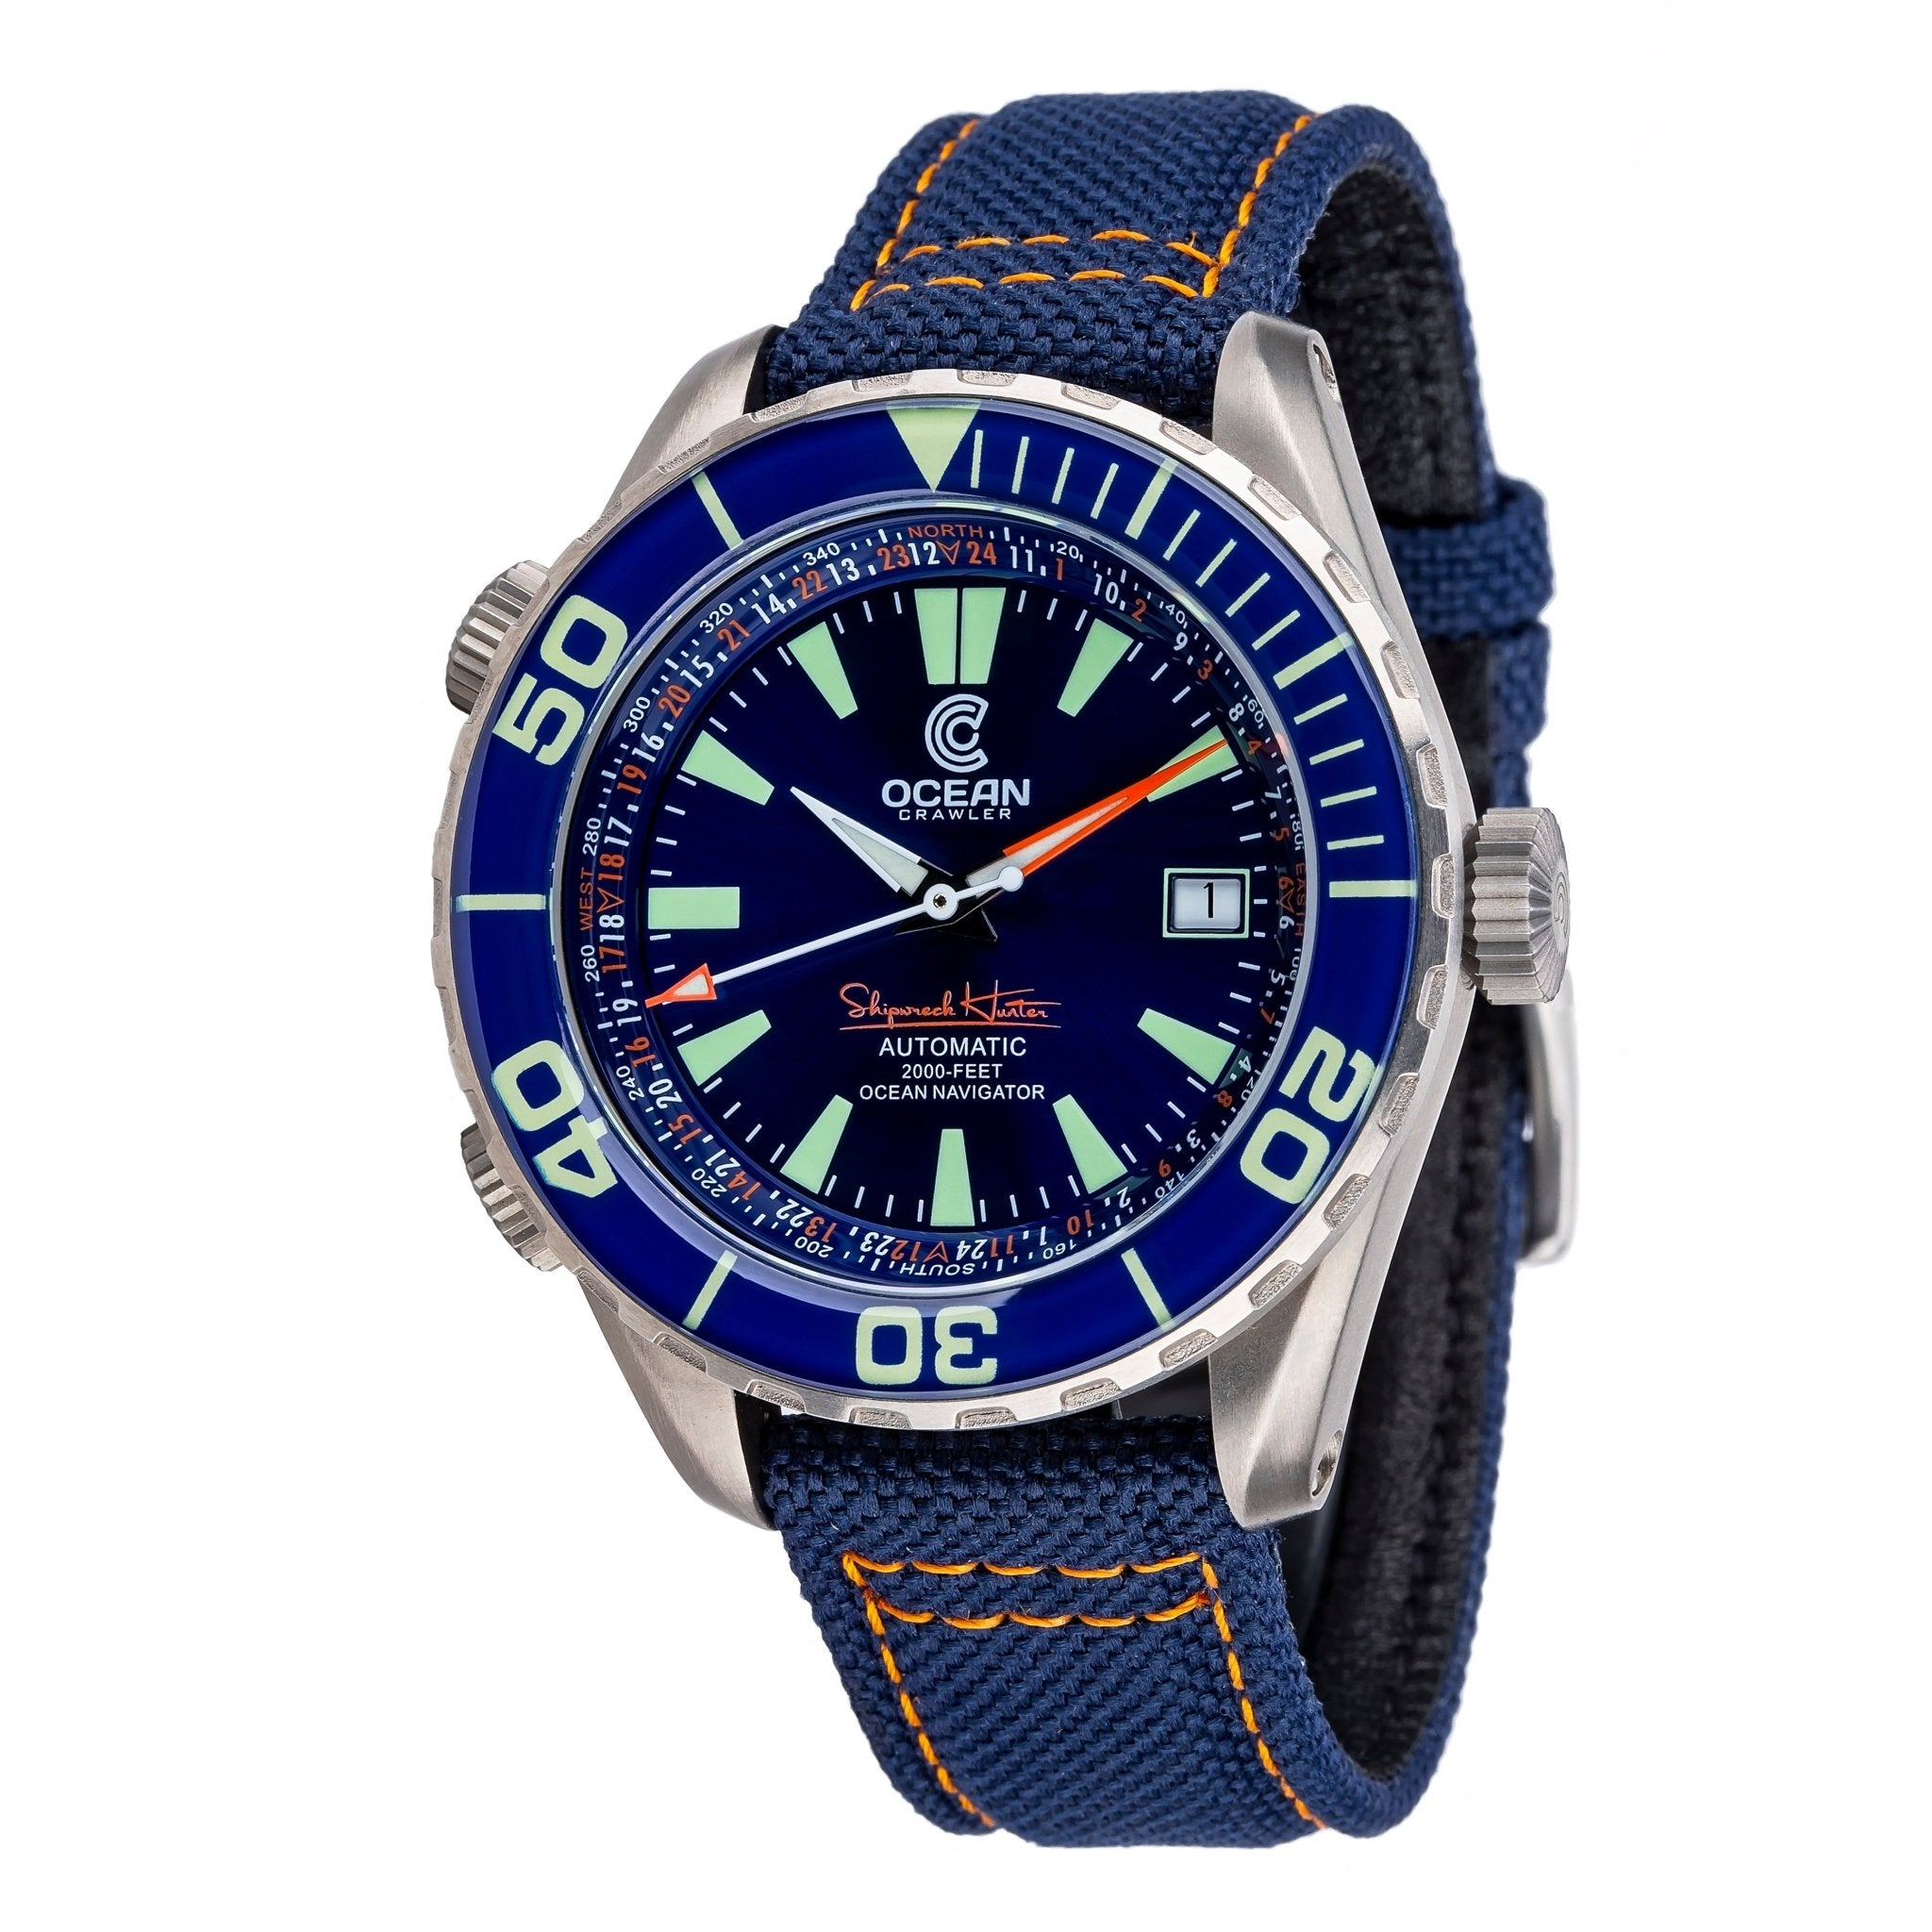 Ocean Crawler Ocean Navigator - Blue - Ocean Crawler Watch Co.